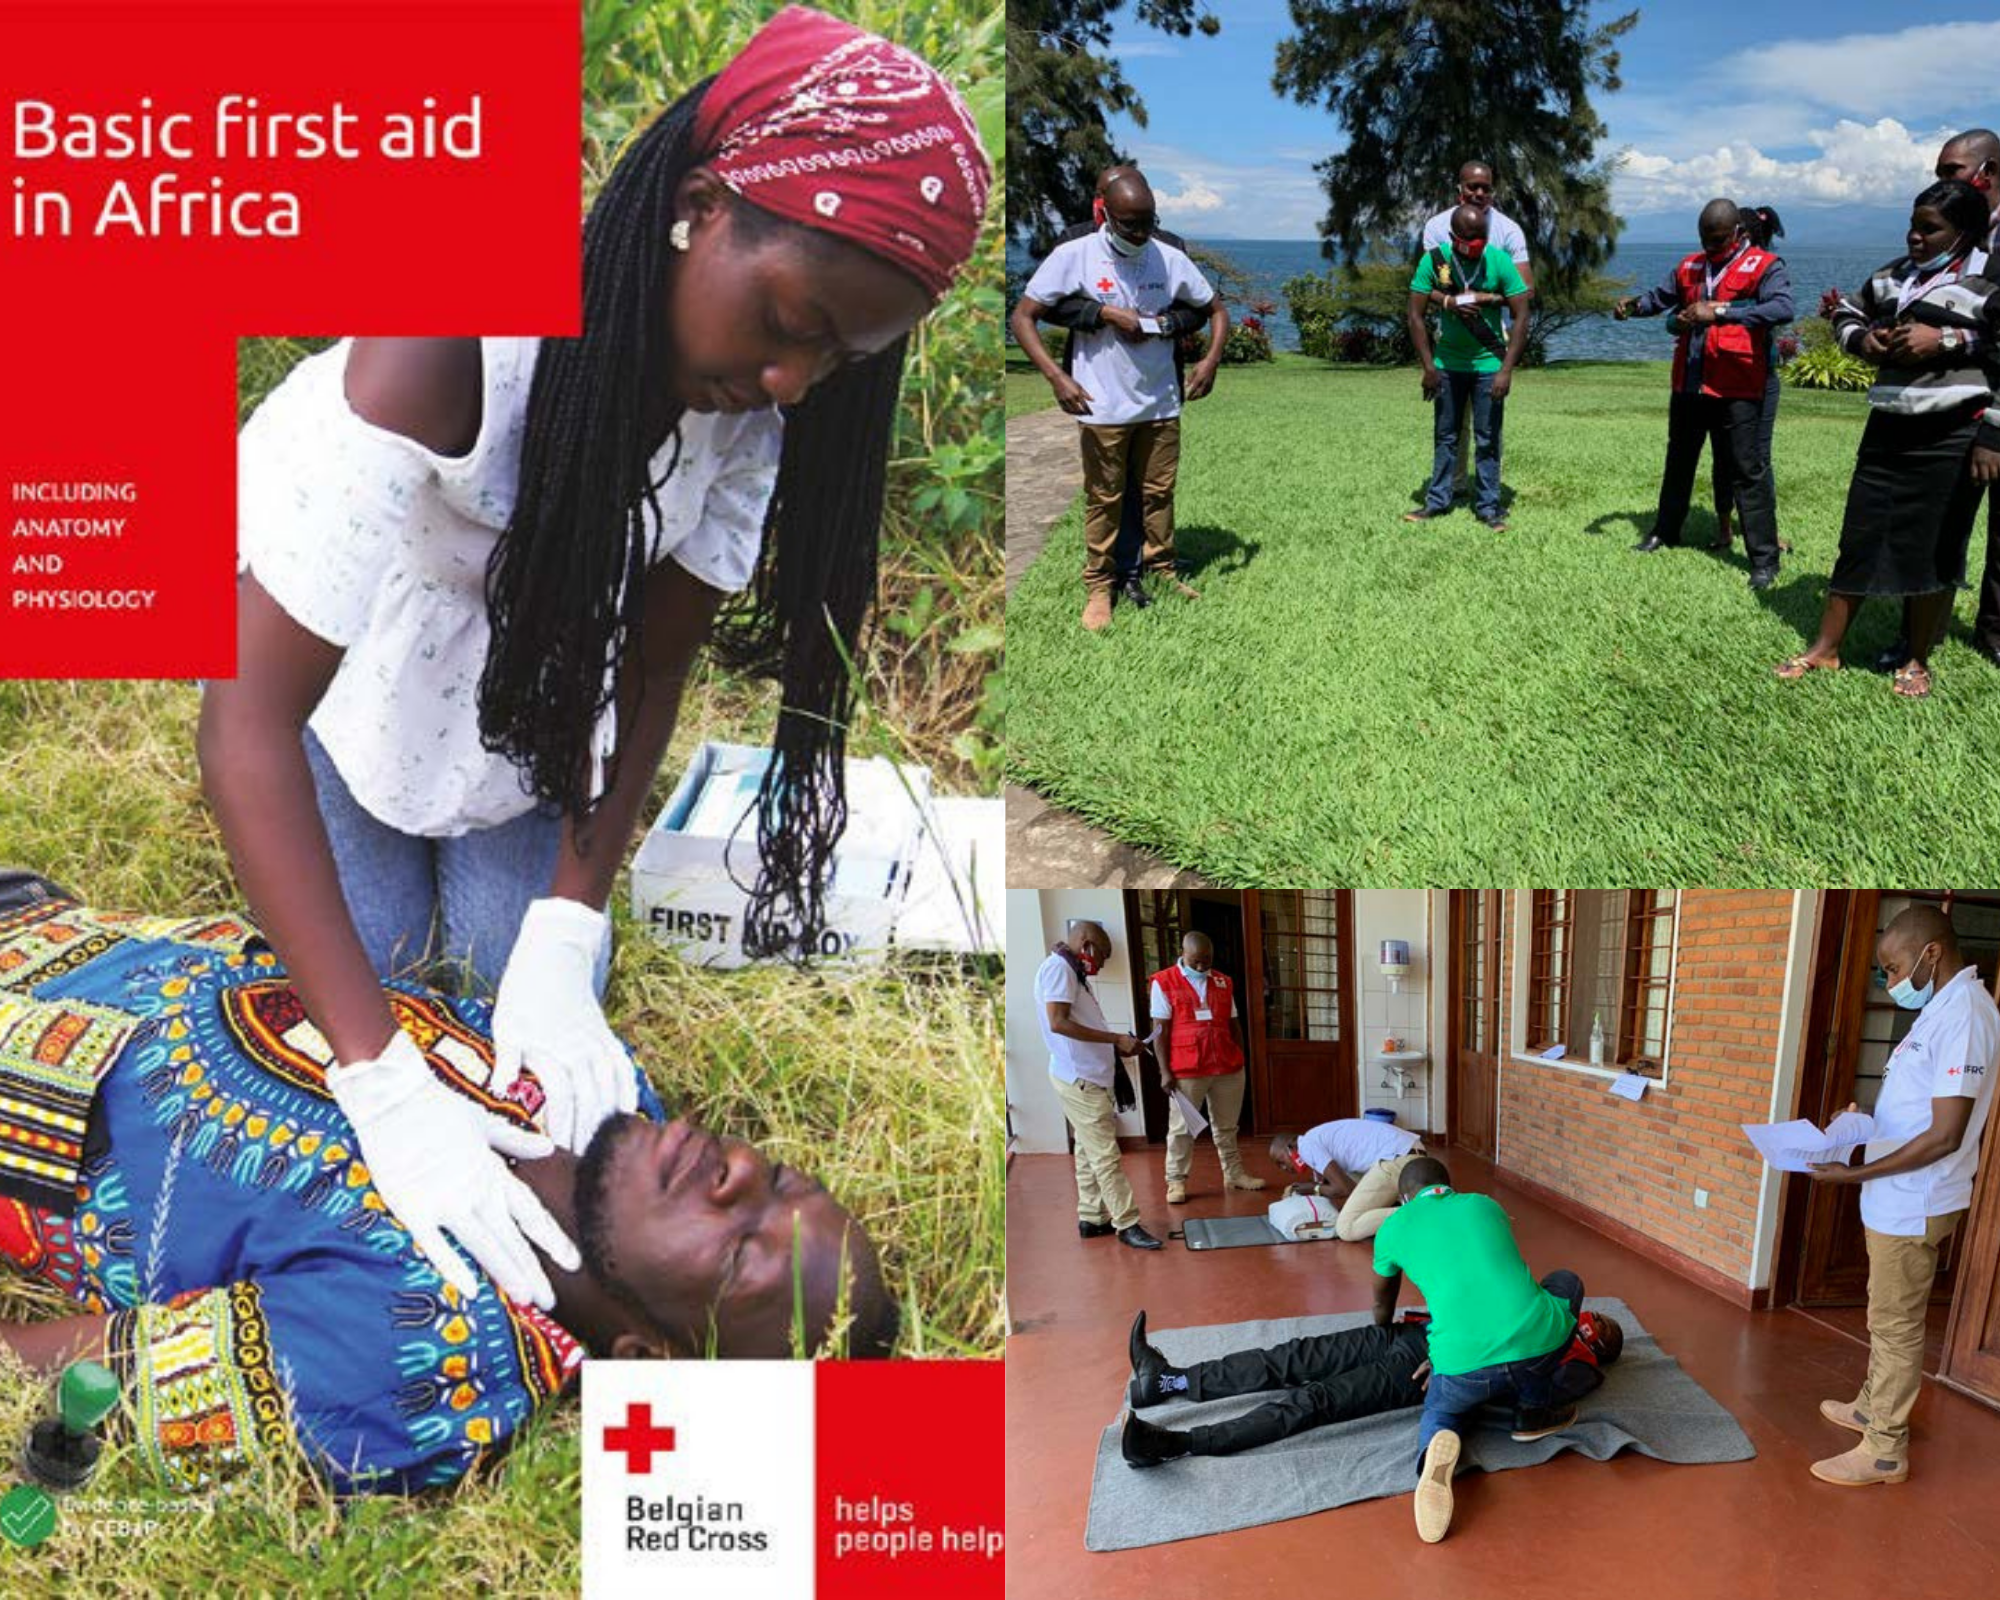 Evidence-Based First Aid Education in Africa